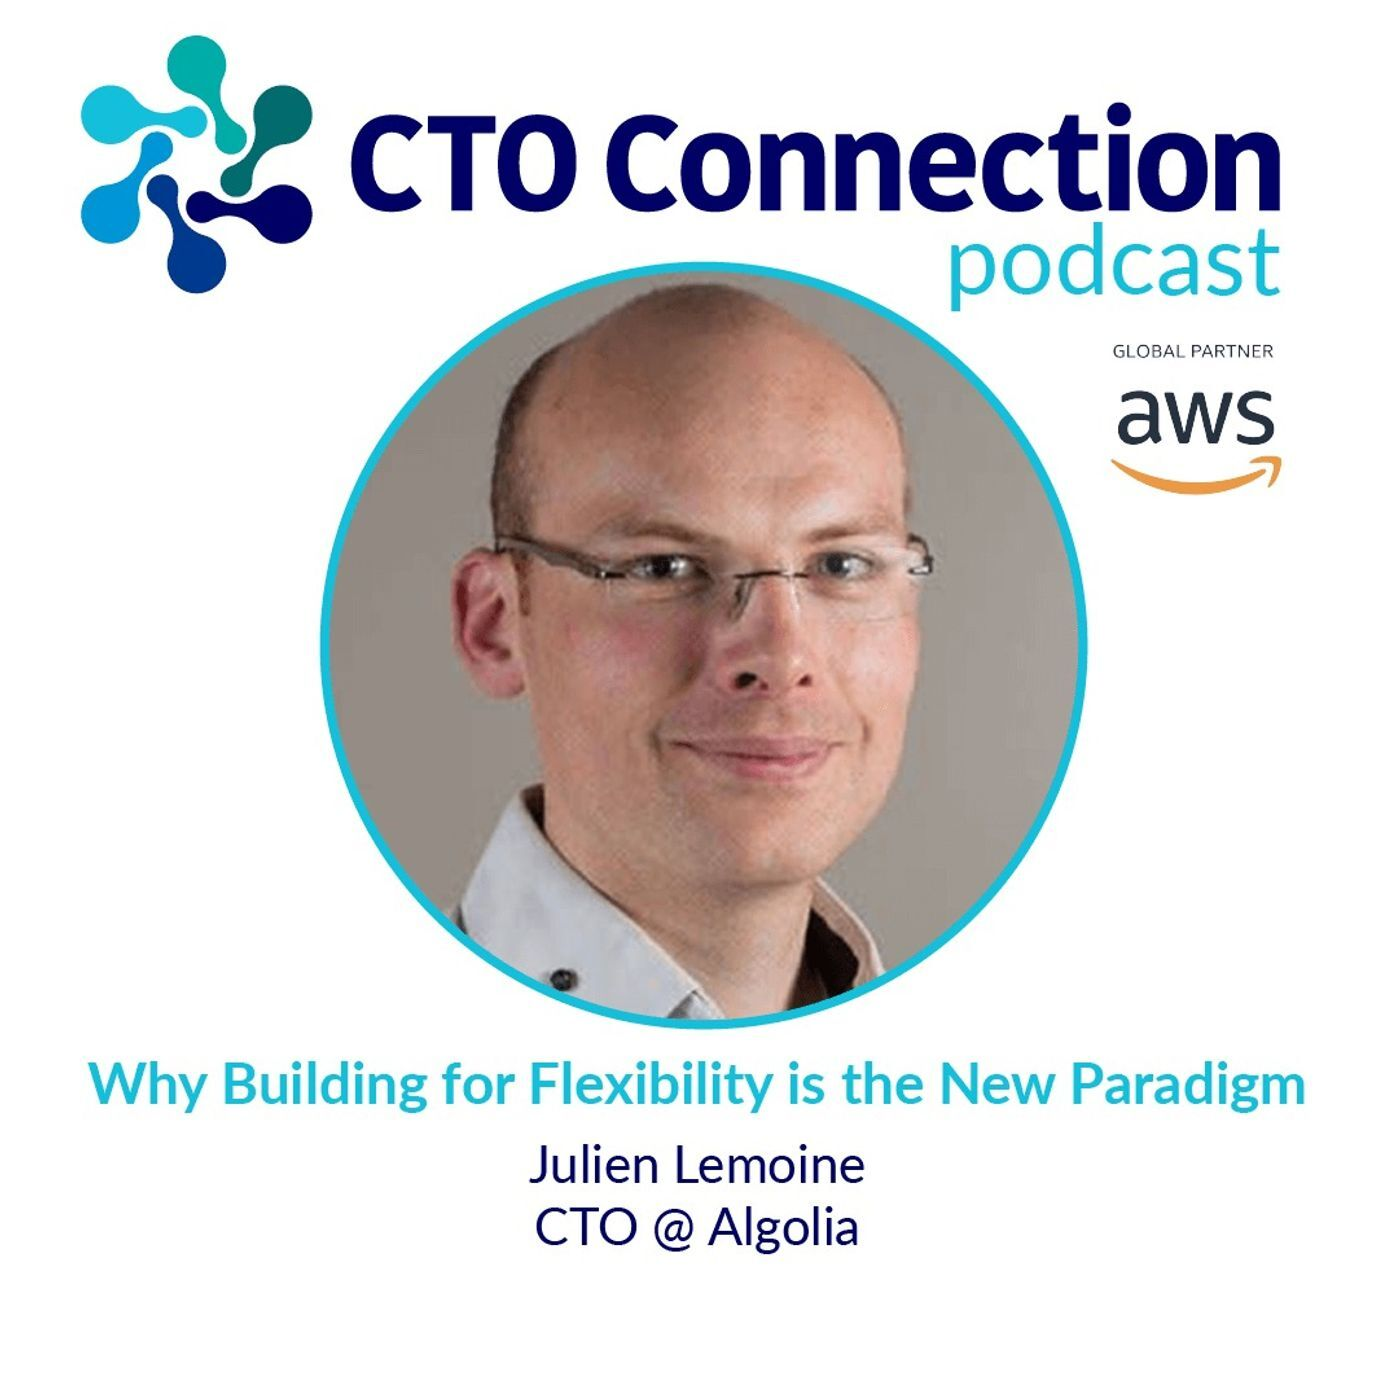 Why Building for Flexibility is the New Paradigm with Julien Lemoine